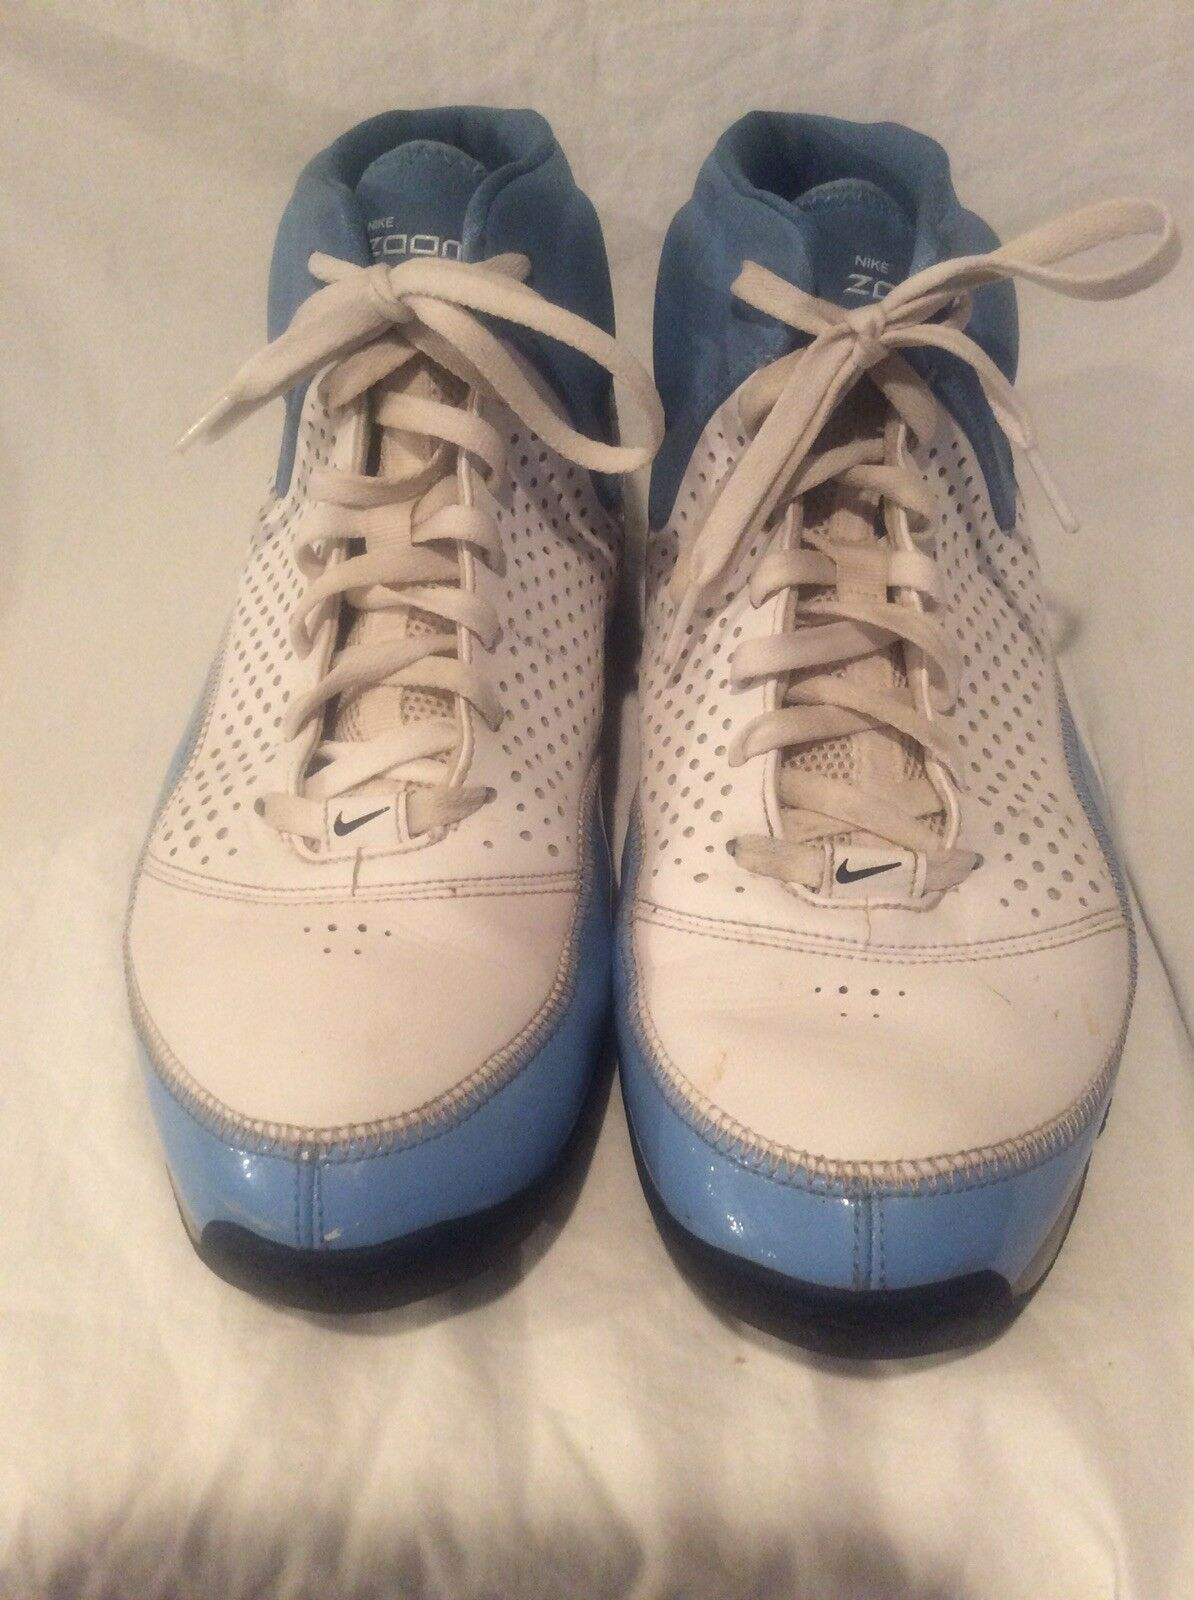 Men's Nike Zoom Blue/White High top Basketball Athletic Shoes Comfortable